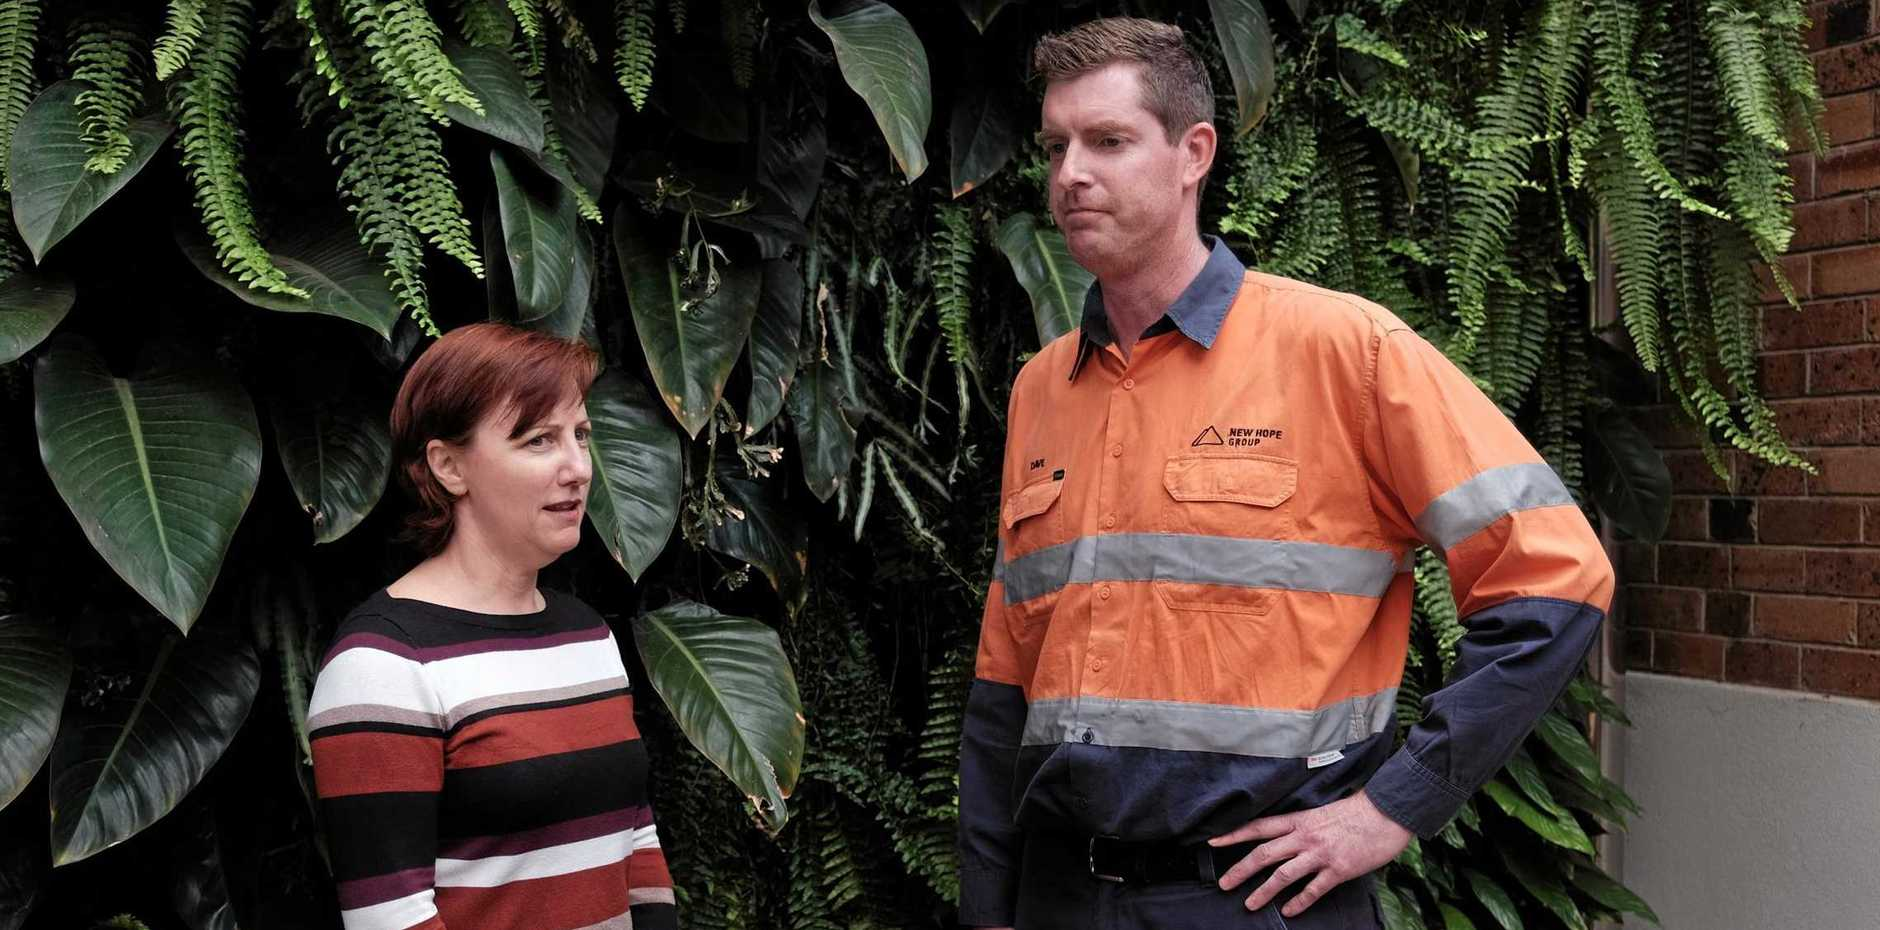 TSBE CEO Ali Davenport talks with New Acland Coal Mine general manager Dave O'Dwyer about the future of the mine.